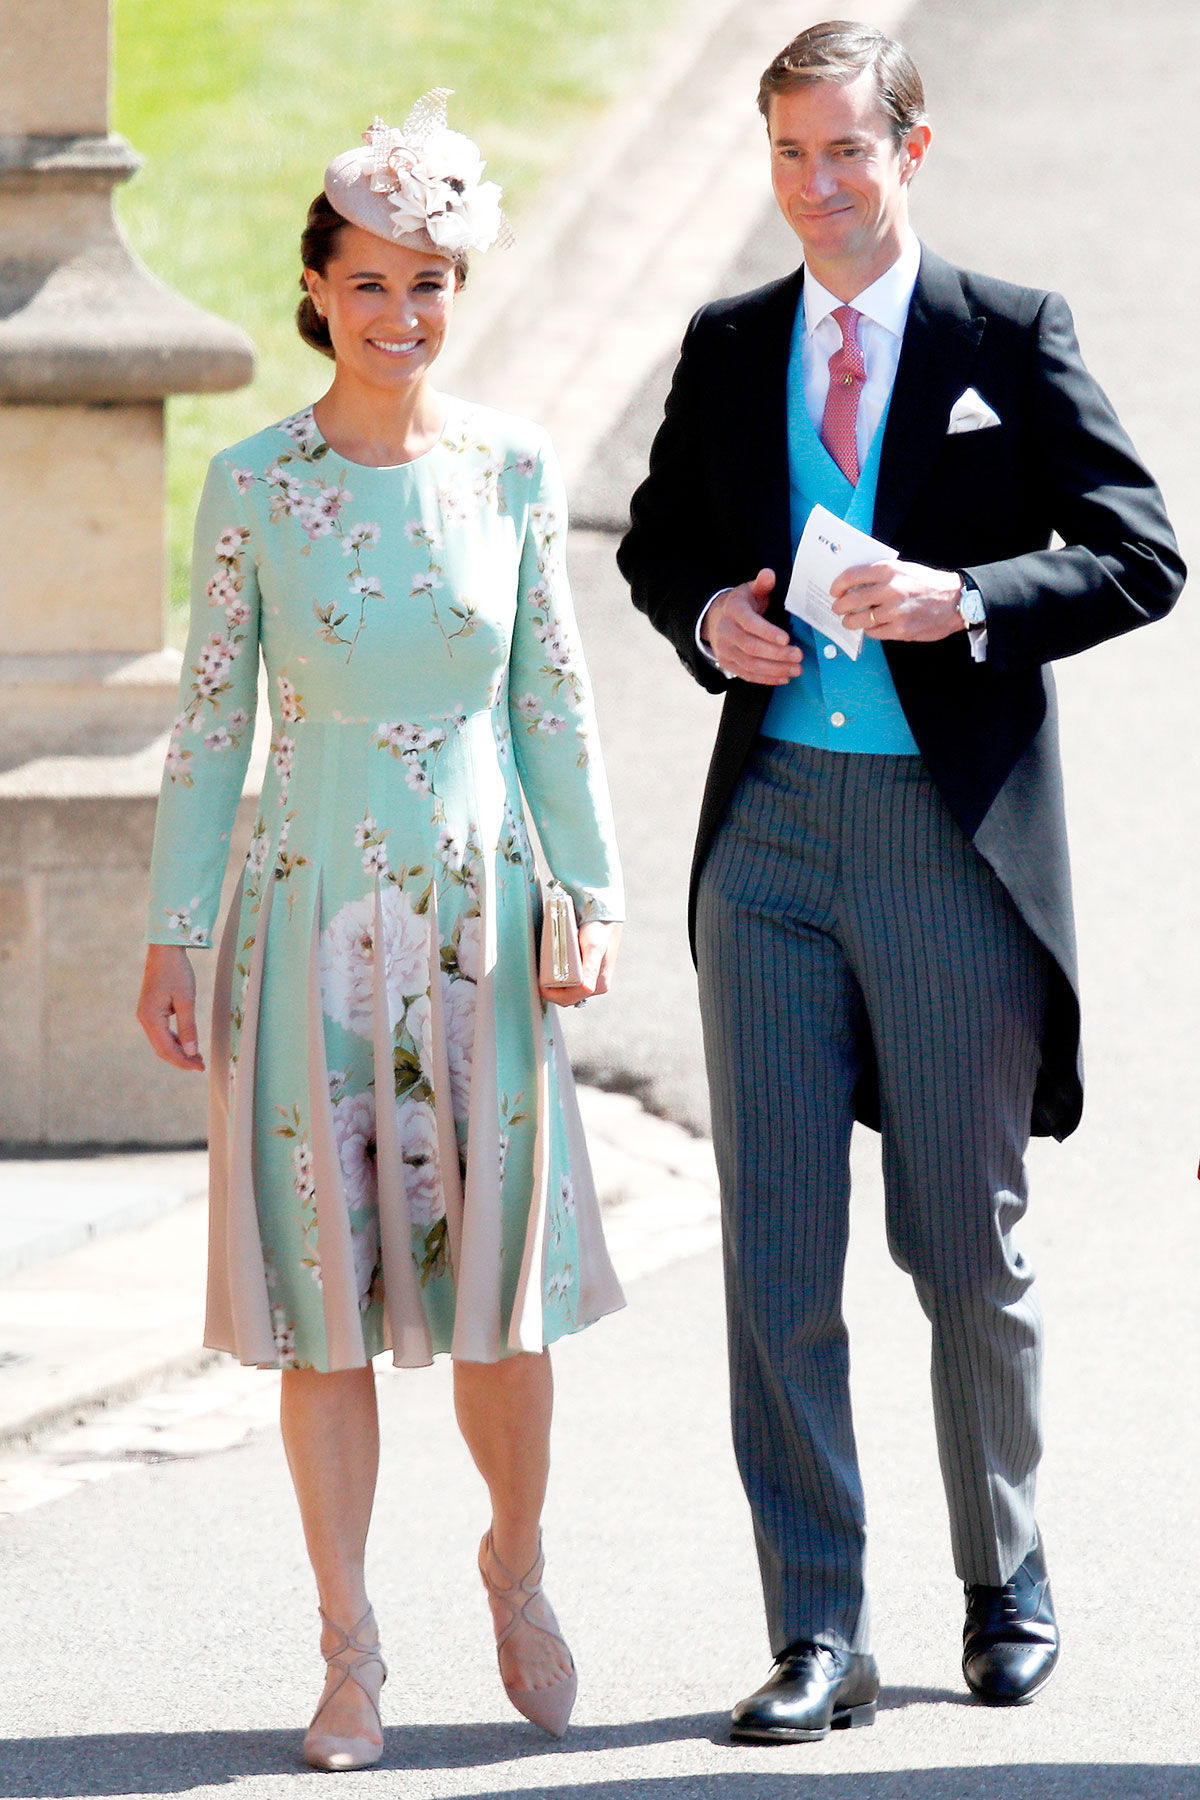 Fashion week Wedding royal what the guests wore for lady